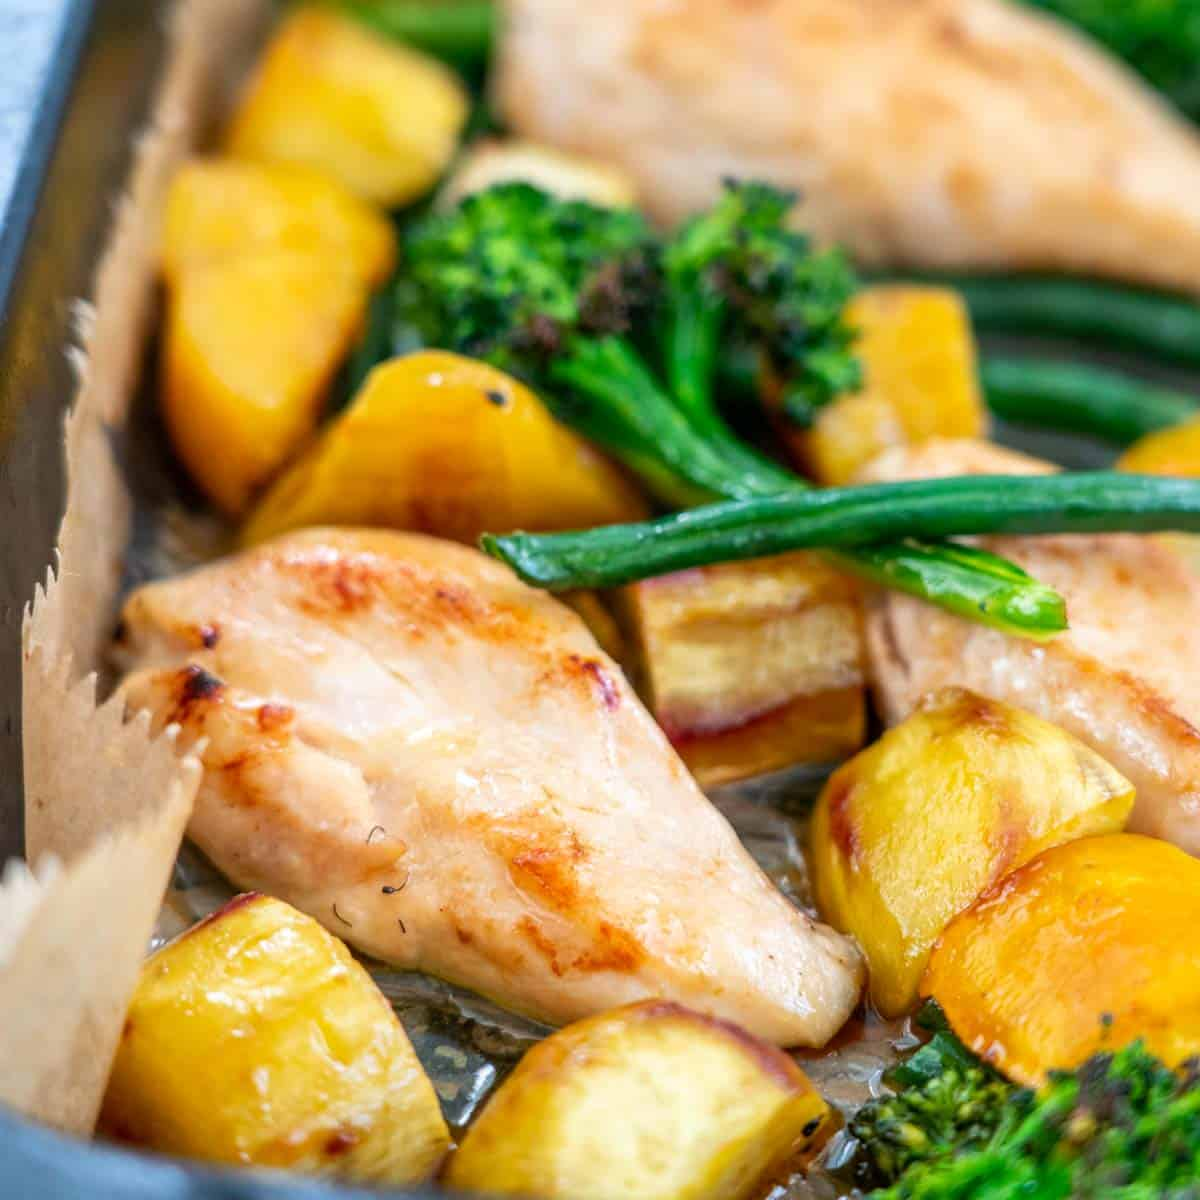 Chicken breast, sweet potato broccoli and beans baked with a maple caramel sauce in a large roasting dish